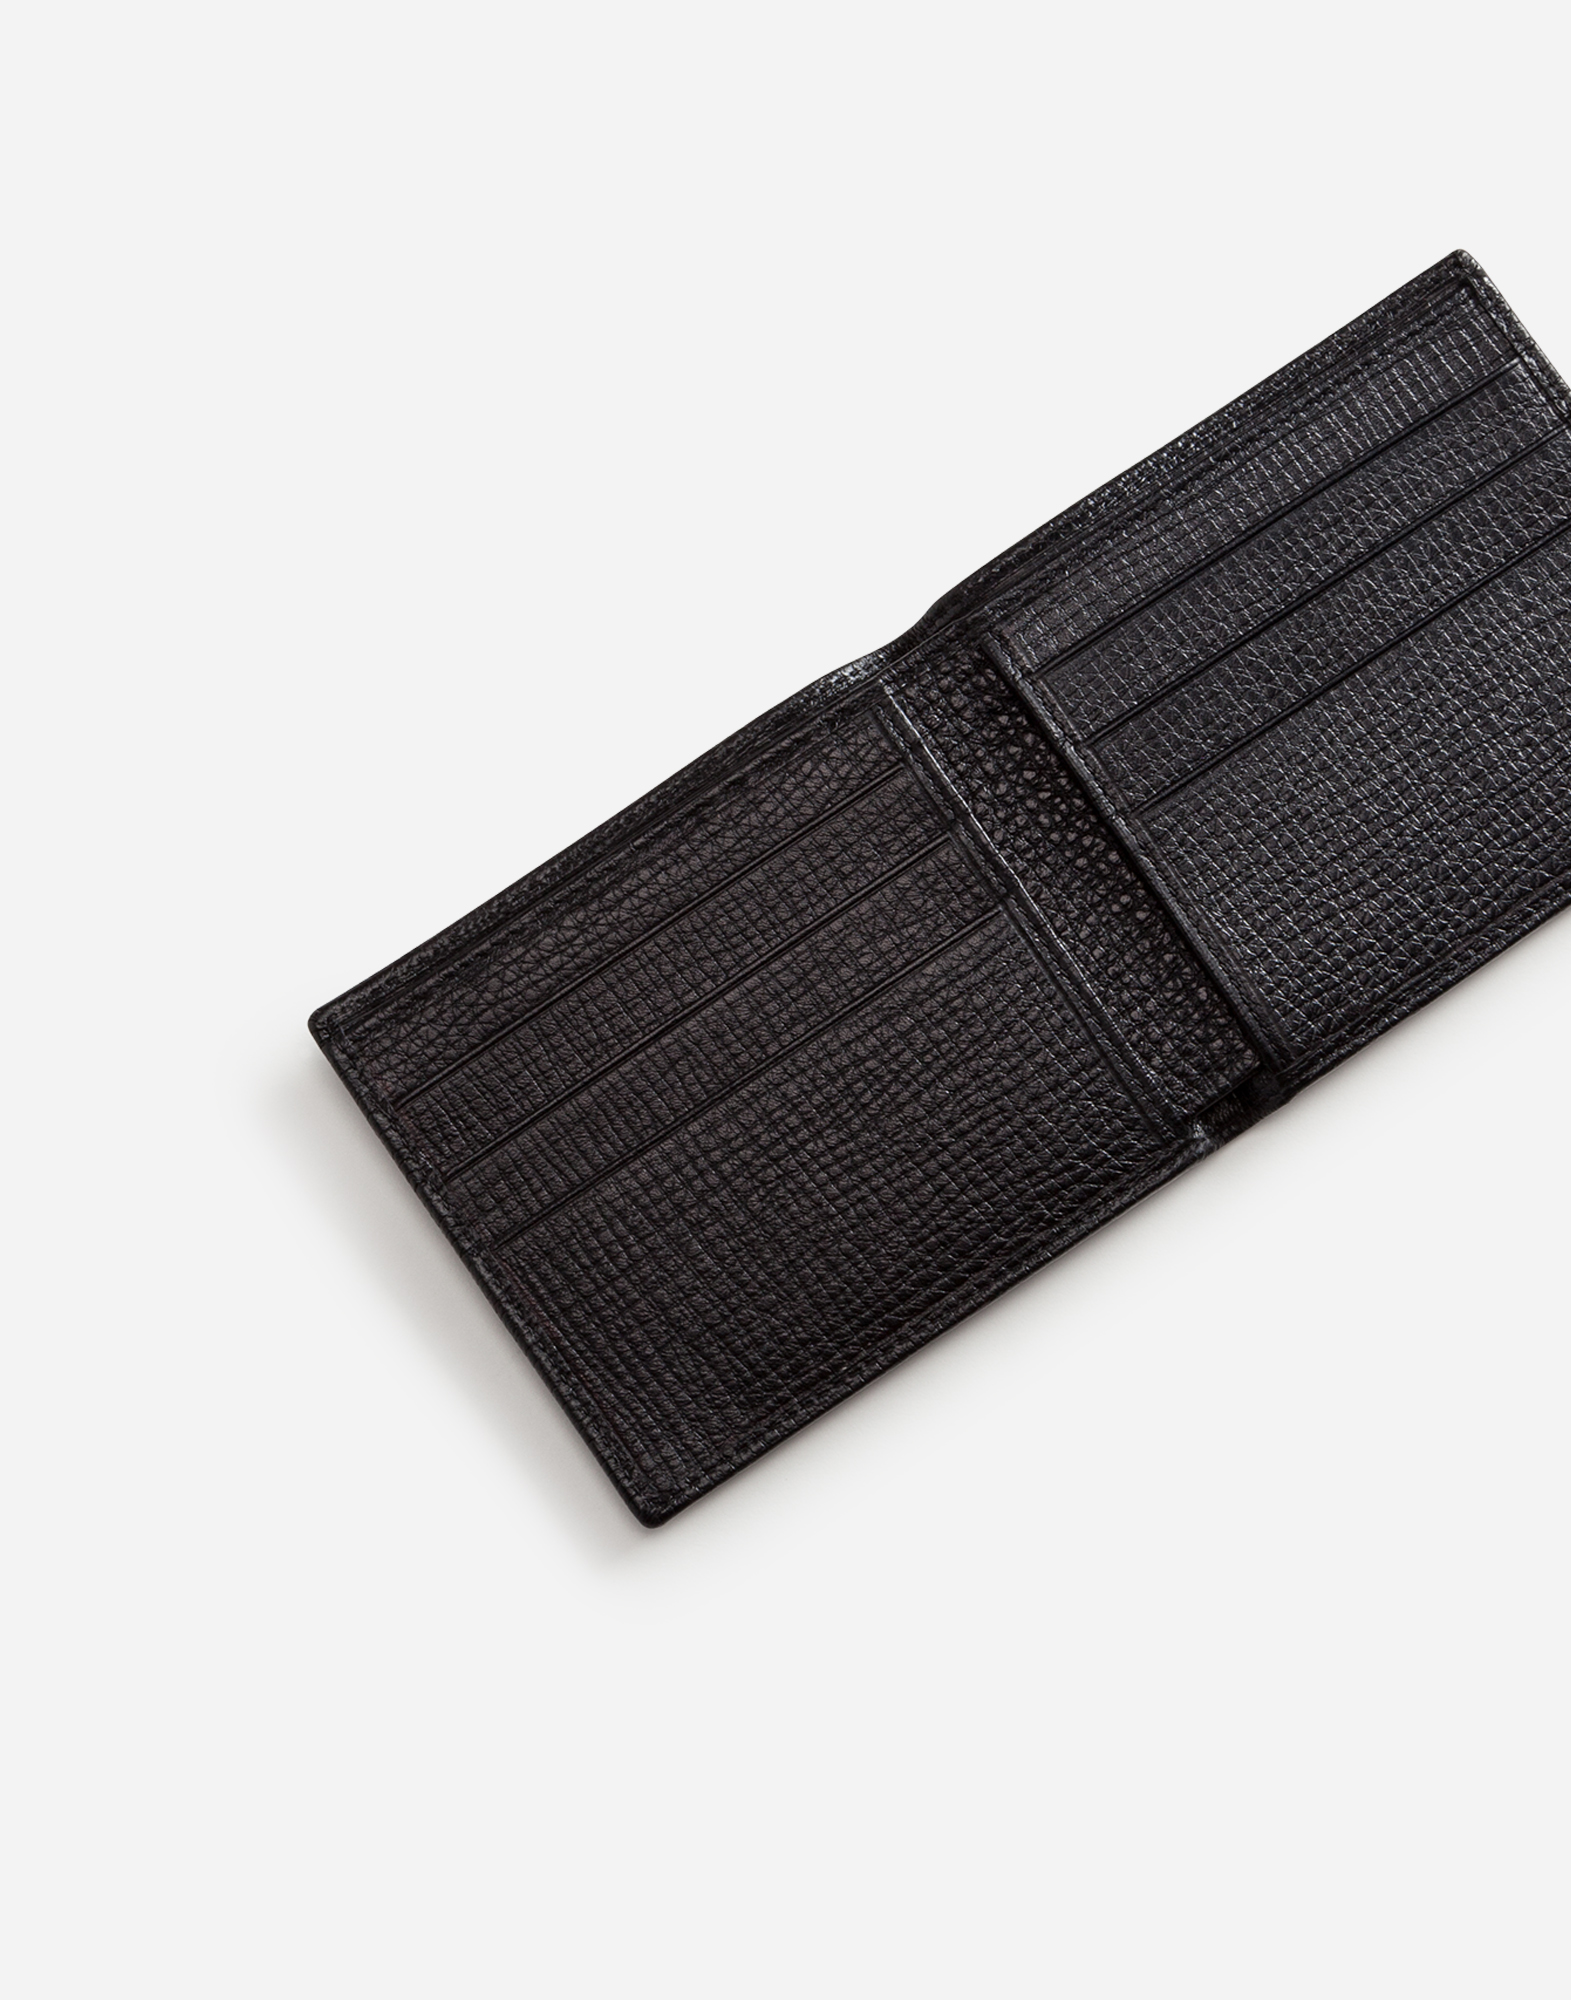 BOARDED CALFSKIN WALLET WITH PATCH